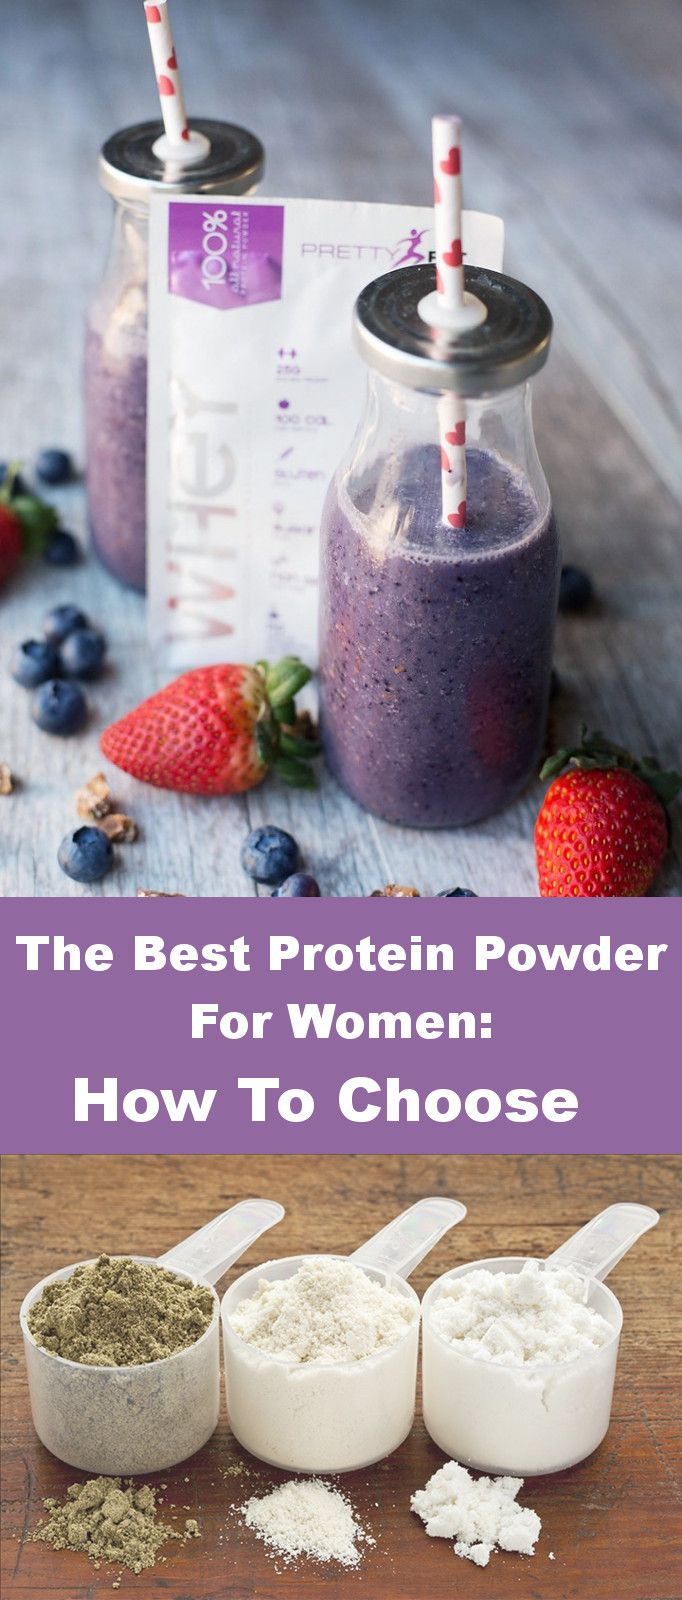 Are you wasting your money on the wrong type of protein powder? http://blog.imprettyfit.com/supplements/best-protein-powder-for-women/?utm_source=pinterest&utm_medium=pincontext&utm_content=image+1&utm_campaign=pinterest+test